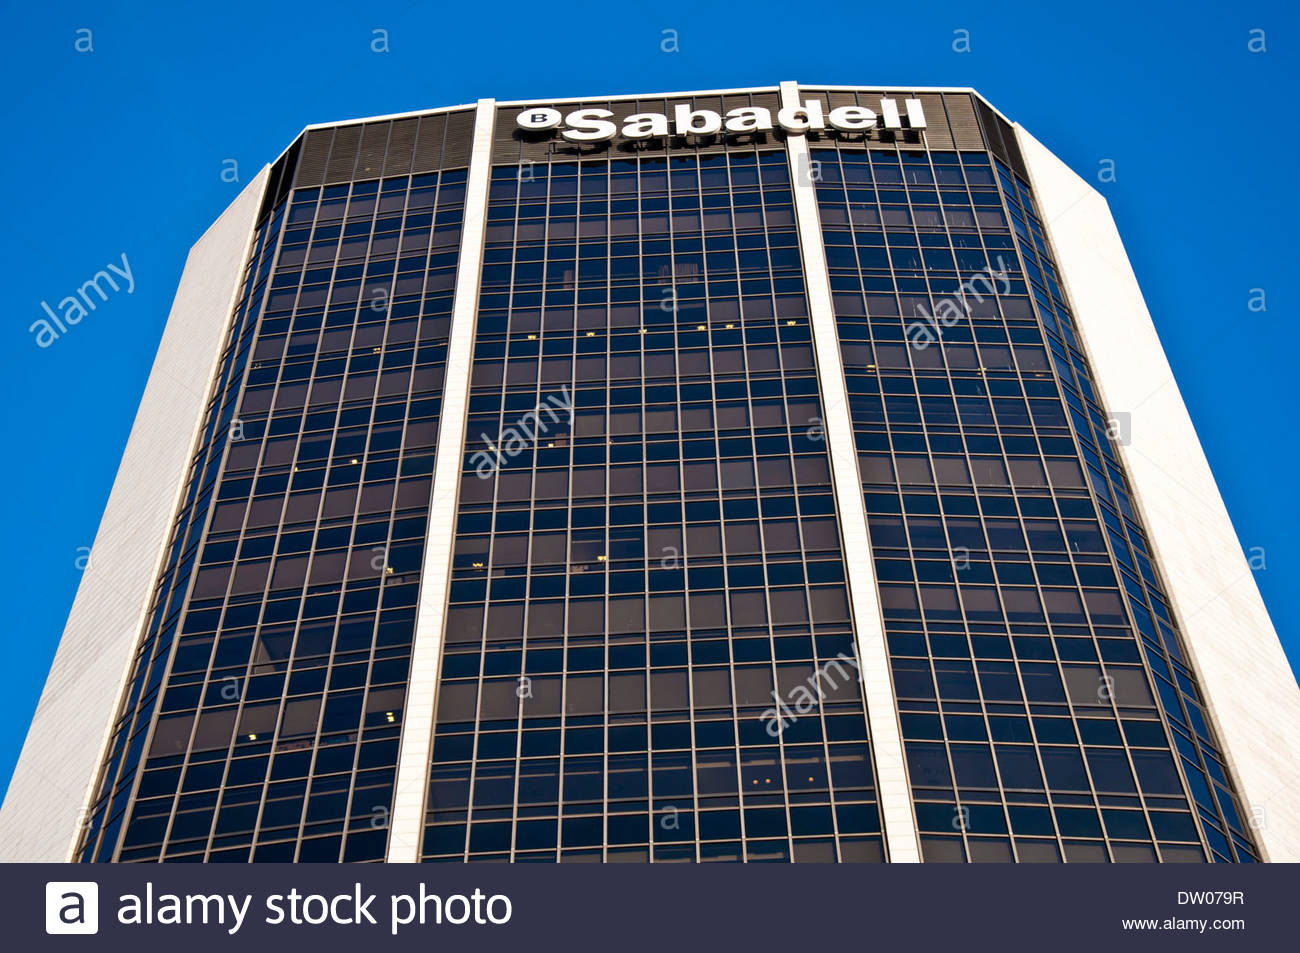 Sabaedell Sabadell Stock Photos Sabadell Stock Images Alamy